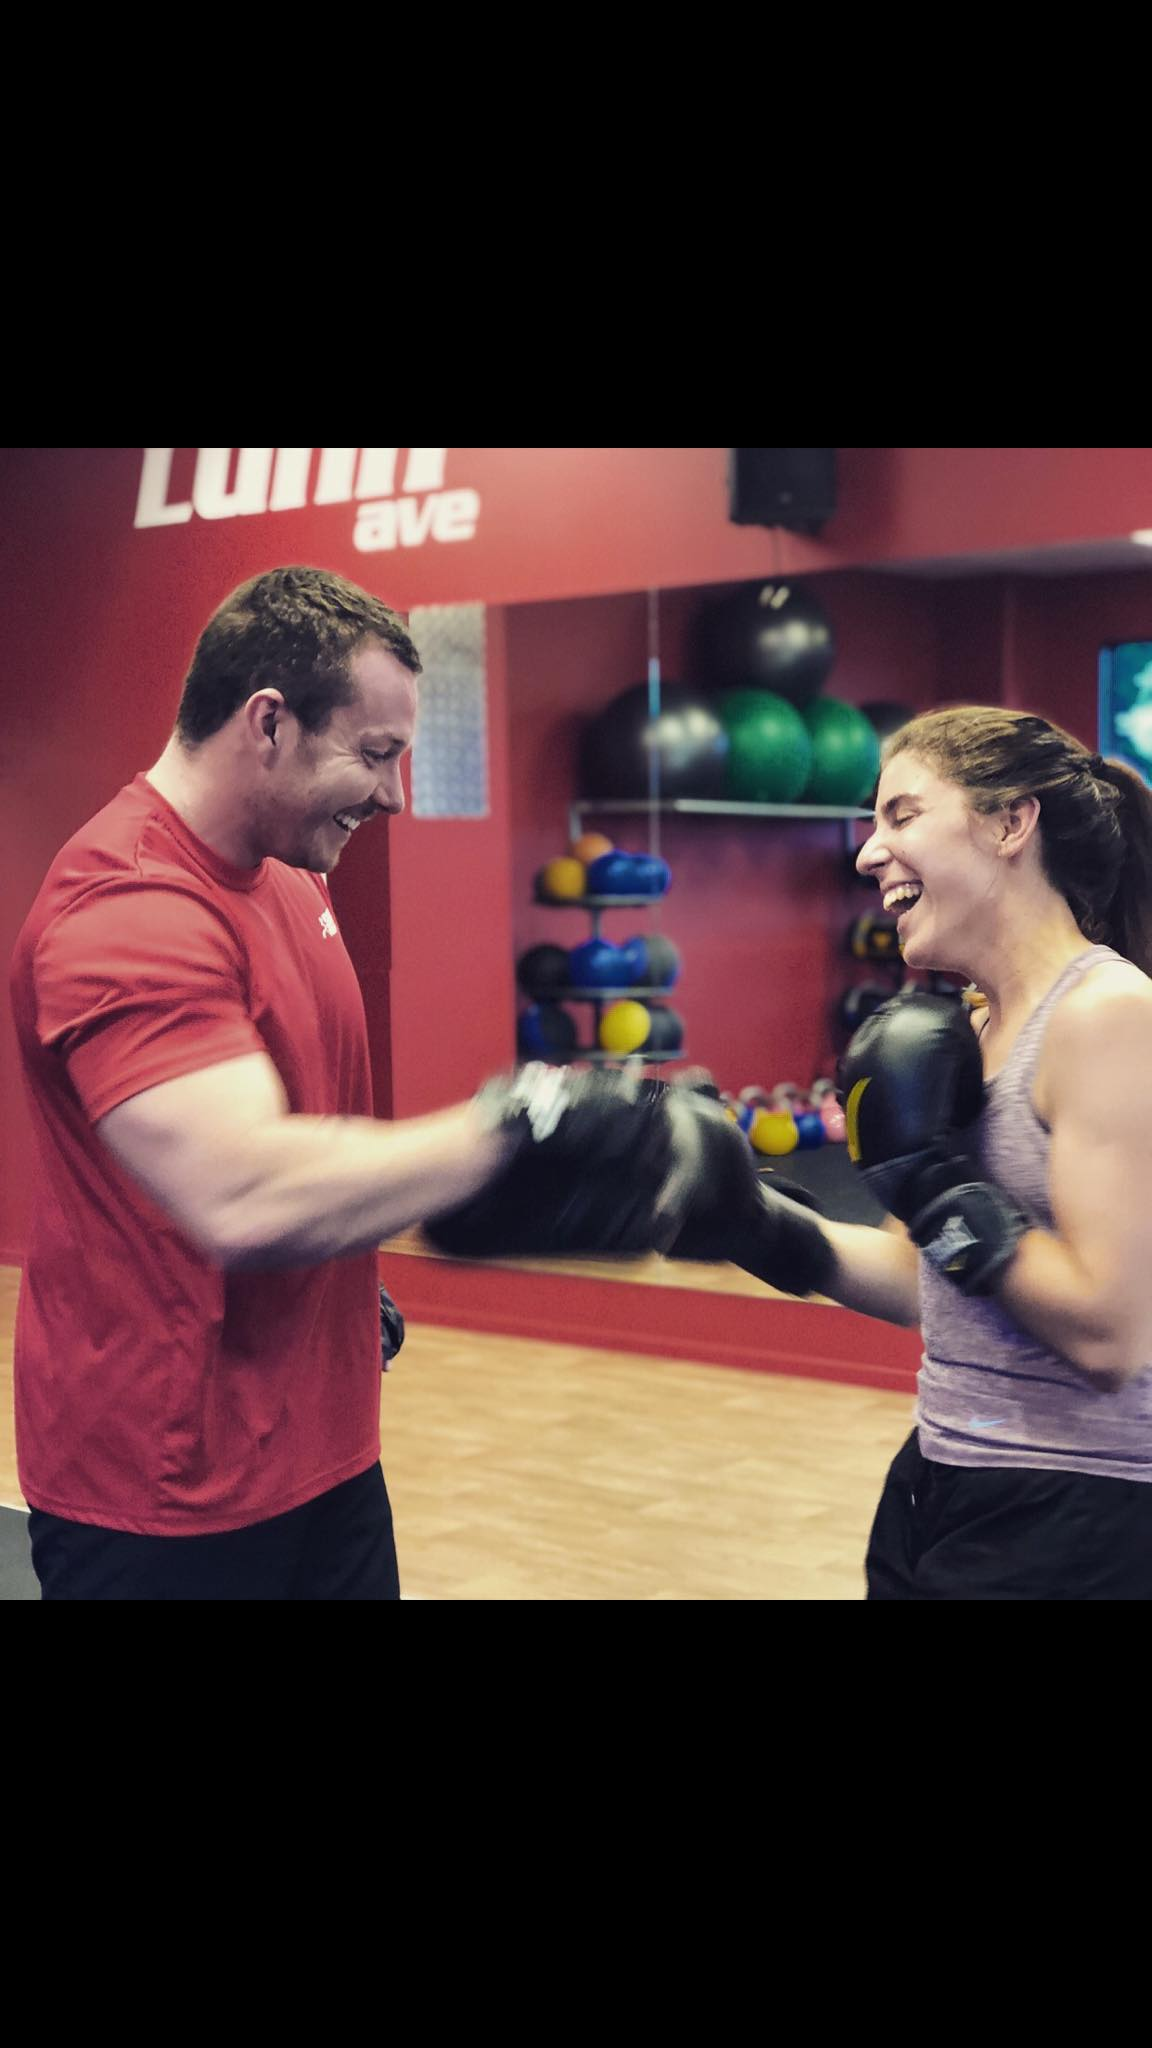 Lunn  Ave – Snap Fitness New Zealand